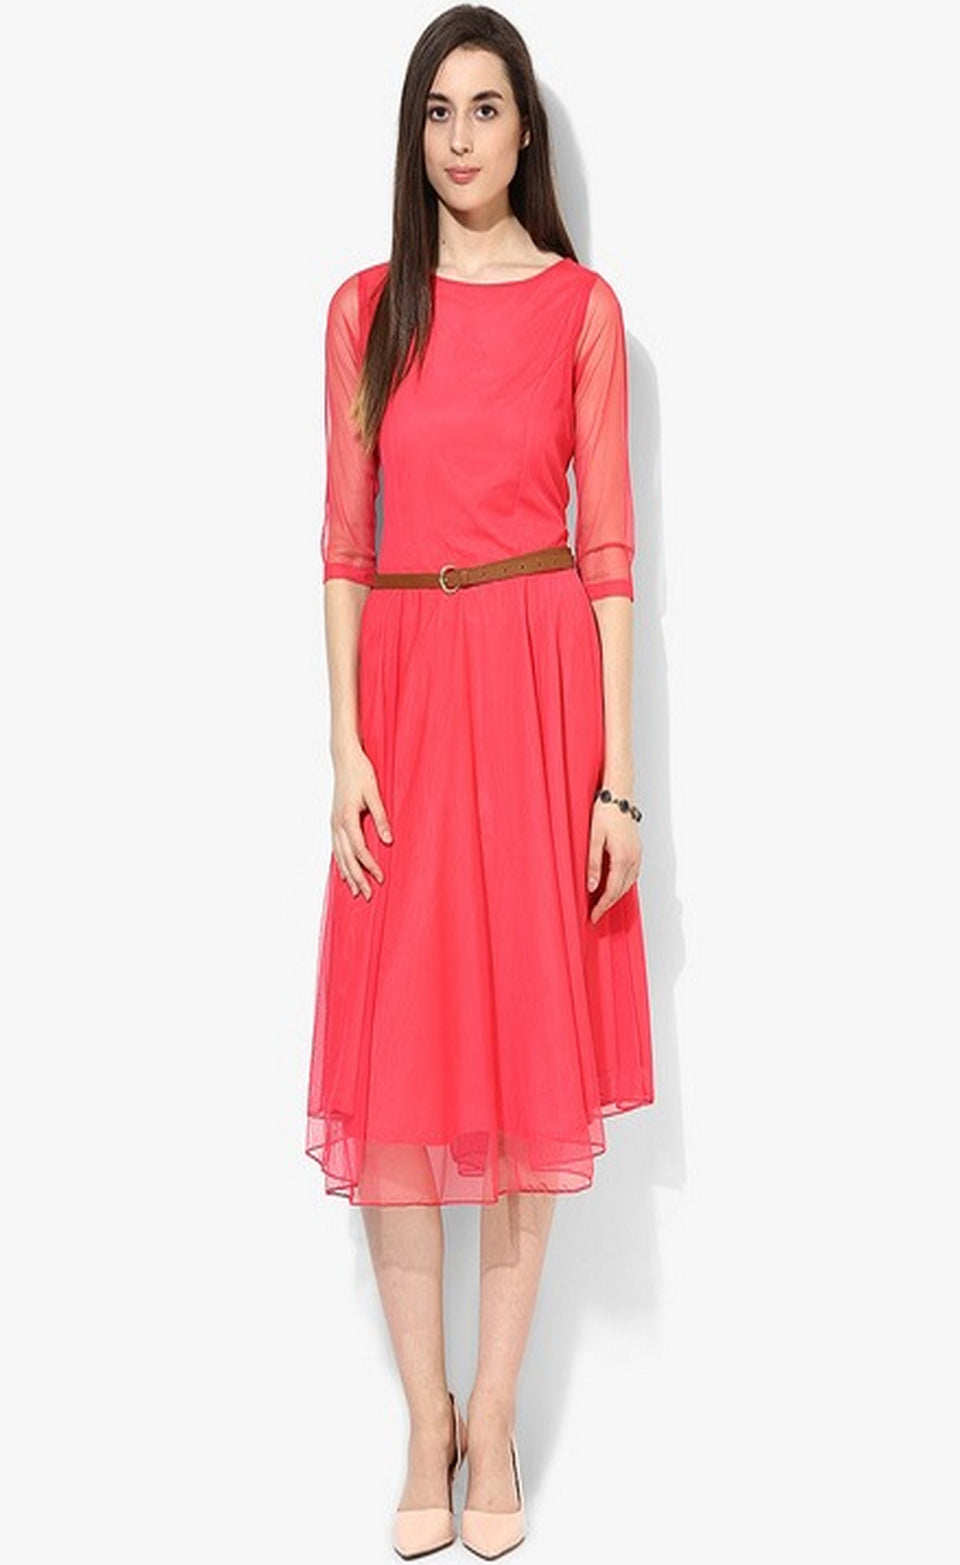 DESIGNER POLYSTER SOLID DRESS - BABBALBUY